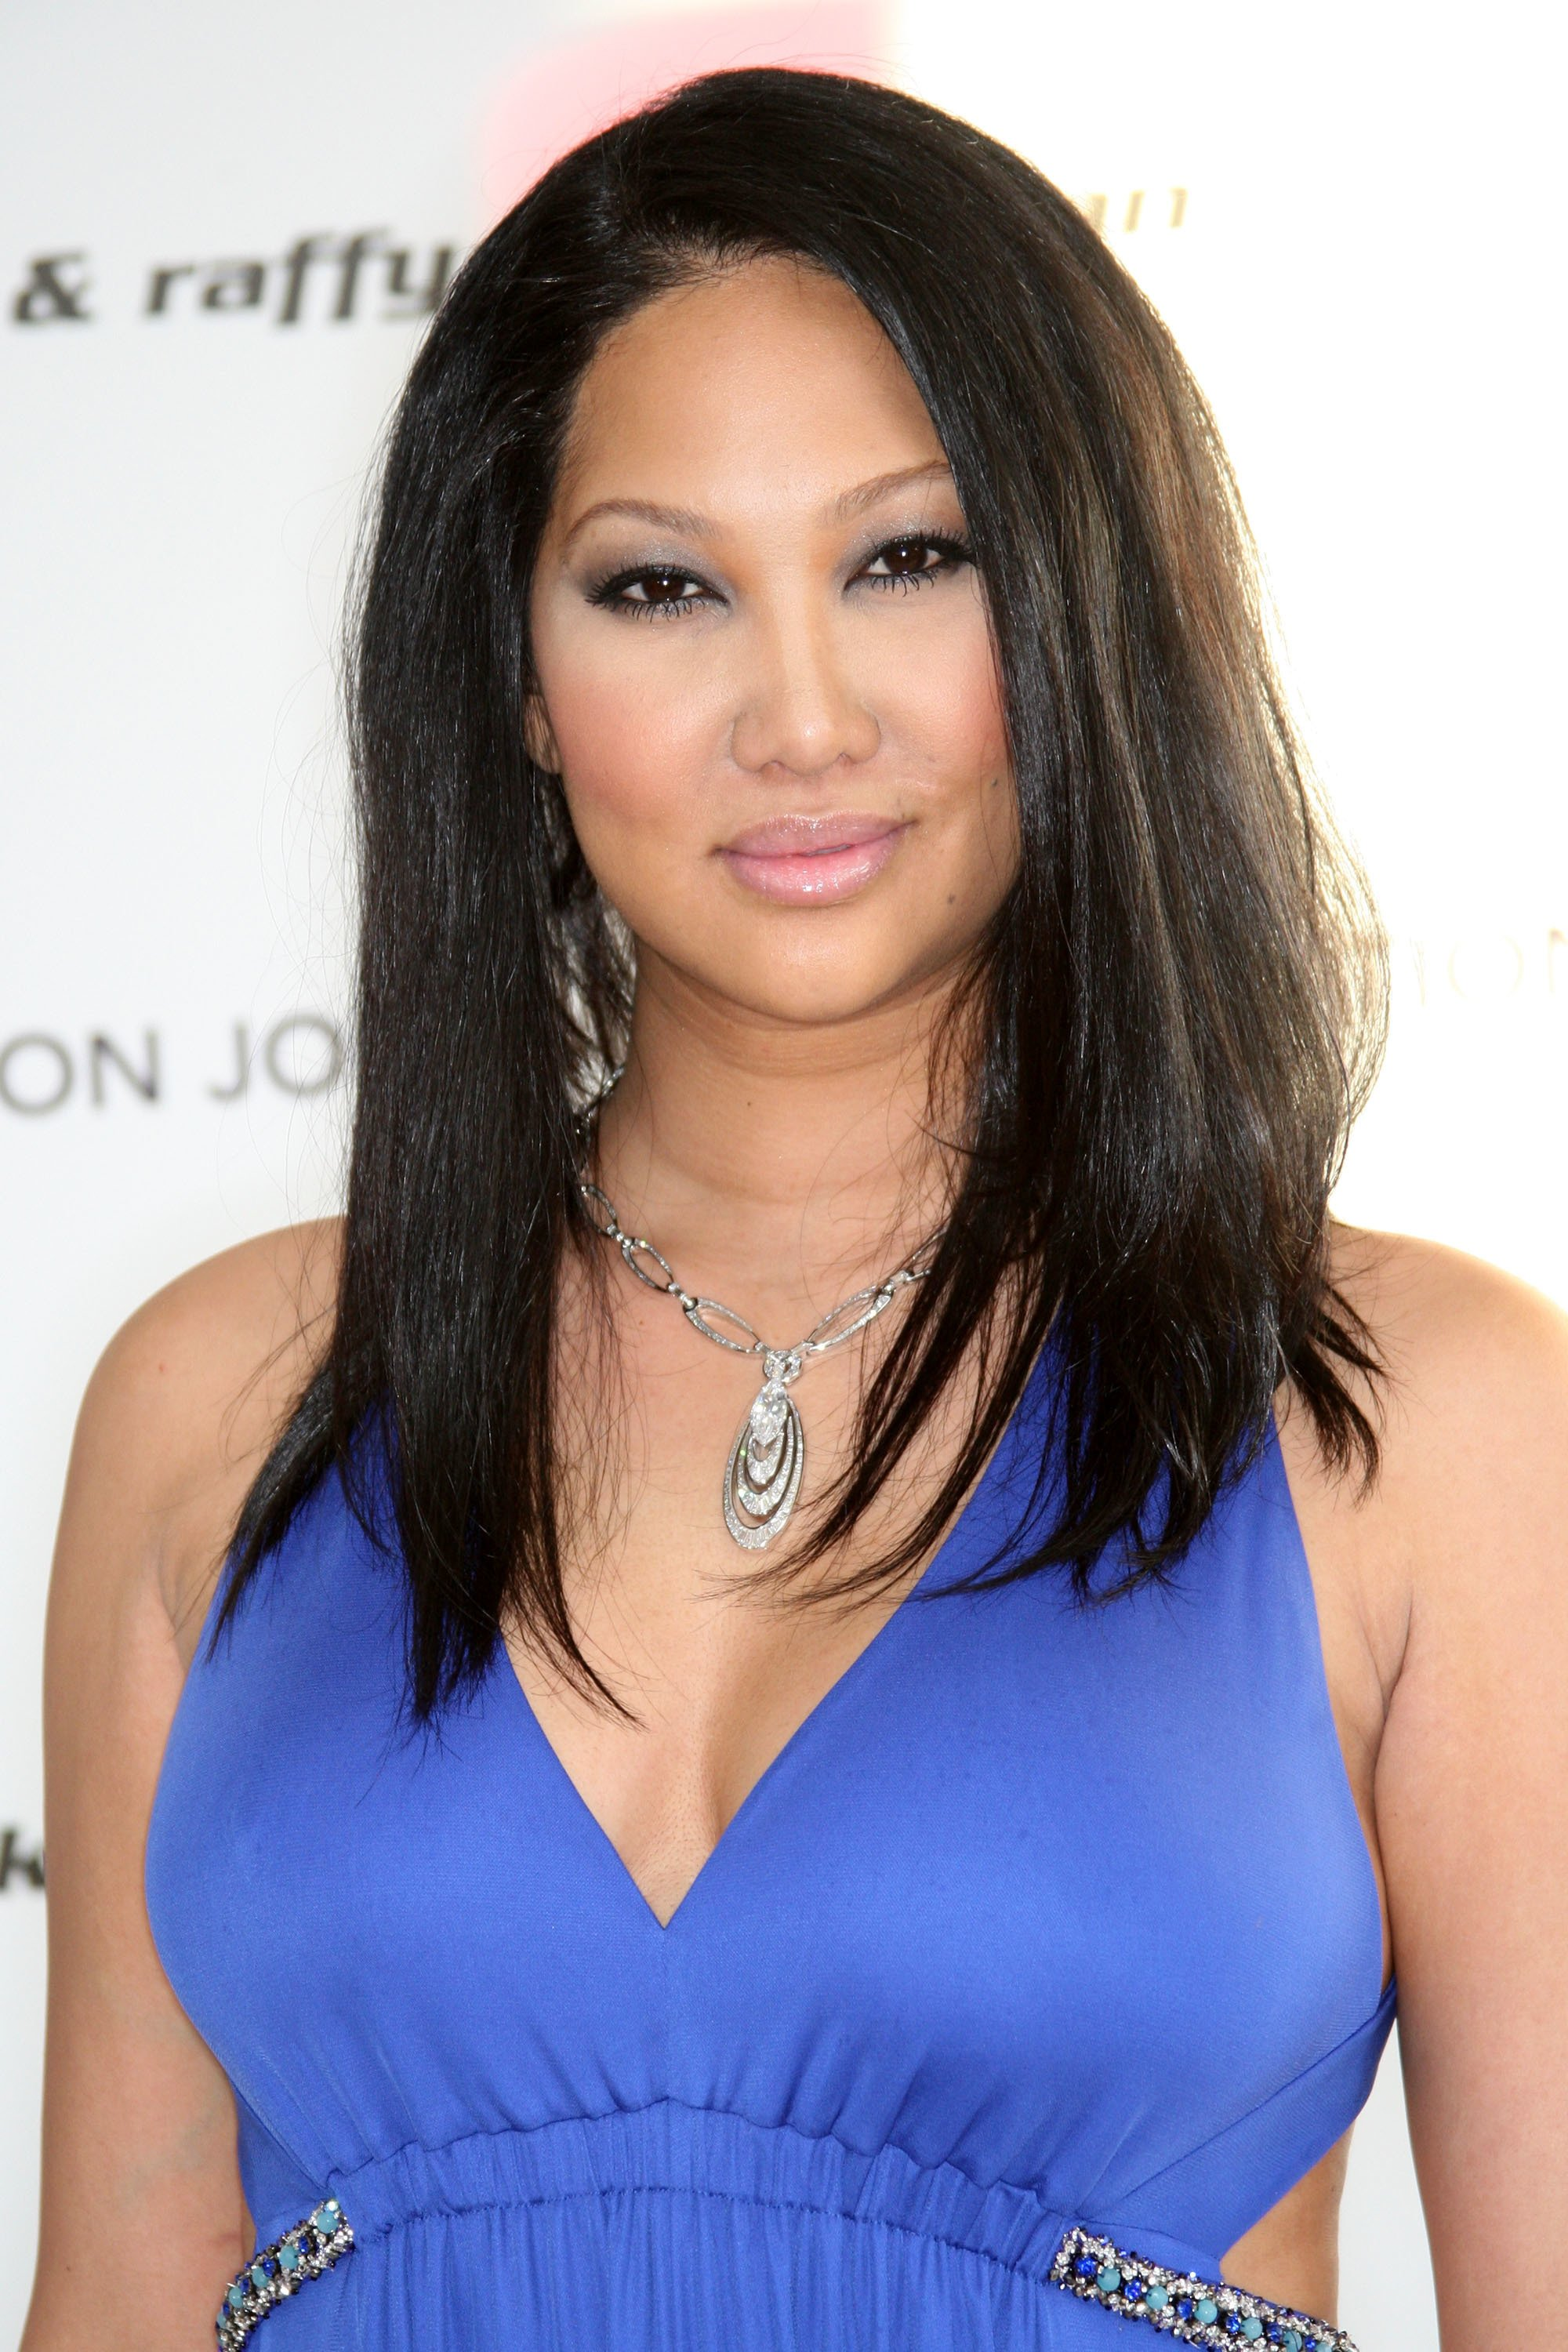 Kimora Lee arrives at the 18th annual Elton John AIDS Foundation Oscar Party on March 7, 2010 in West Hollywood, California | Photo: Getty Images